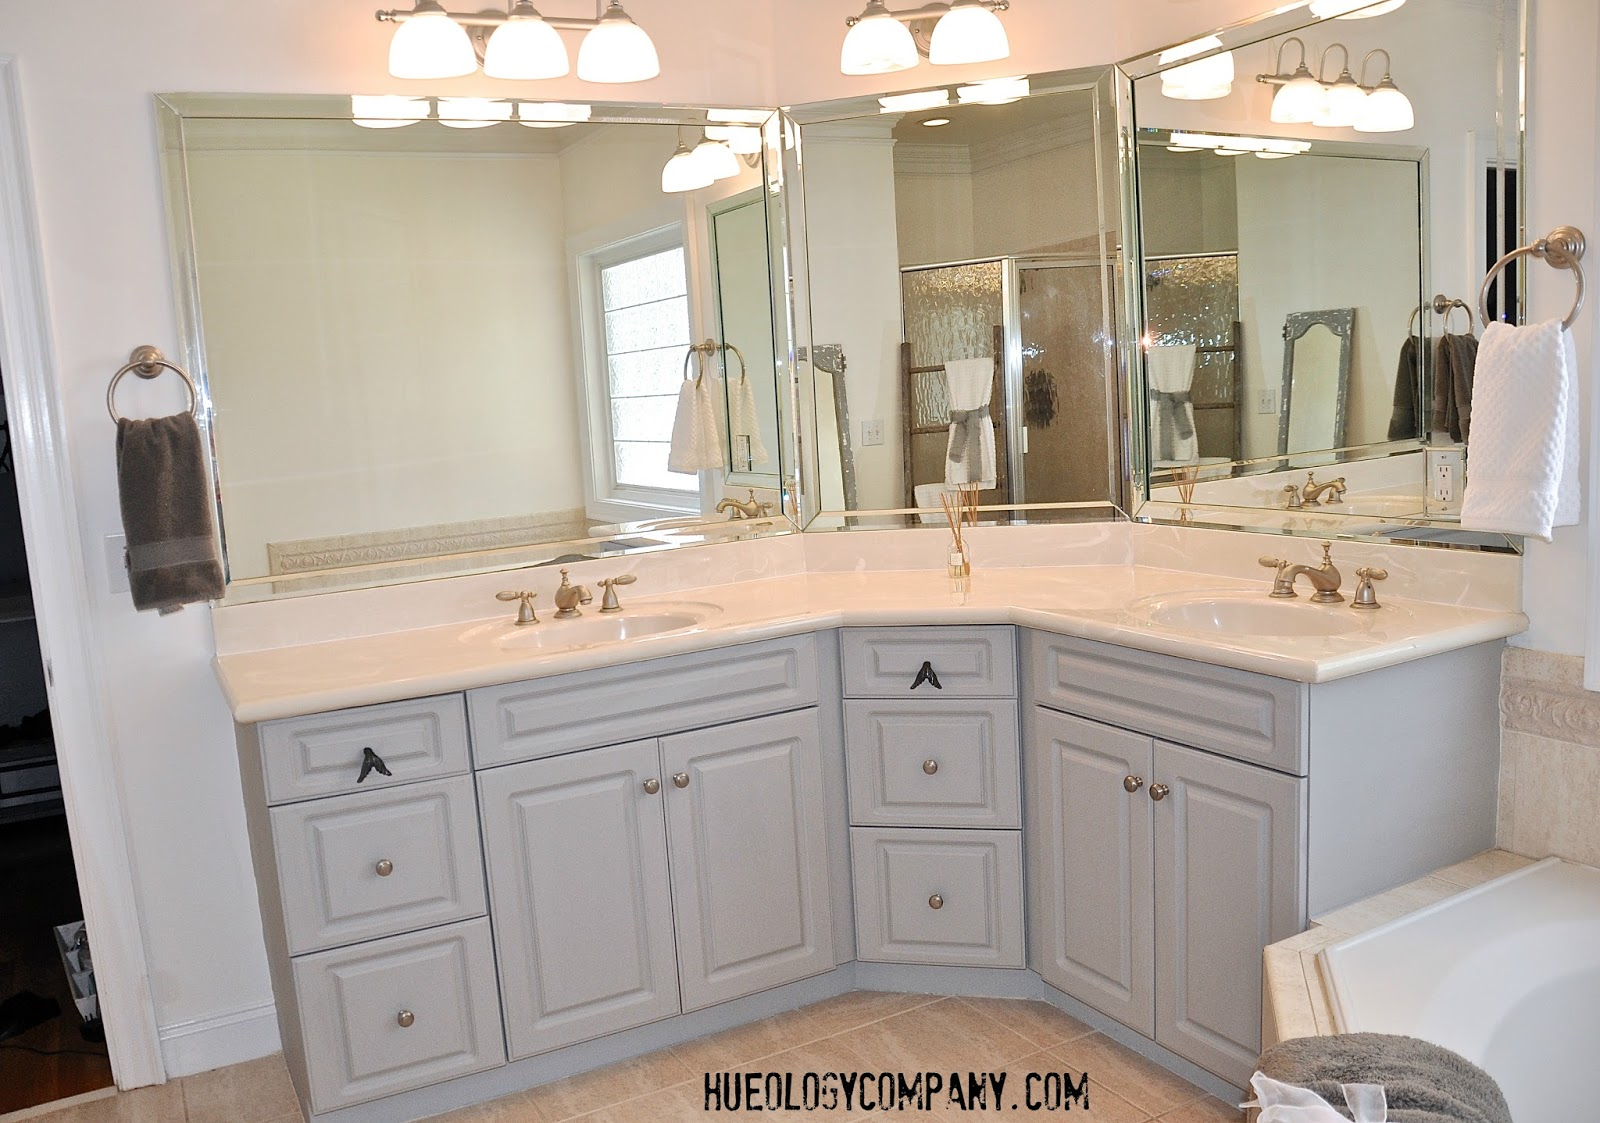 Painting Bathroom Cabinets Gray painting bathroom cabinets – master bath makeover | hueology studio